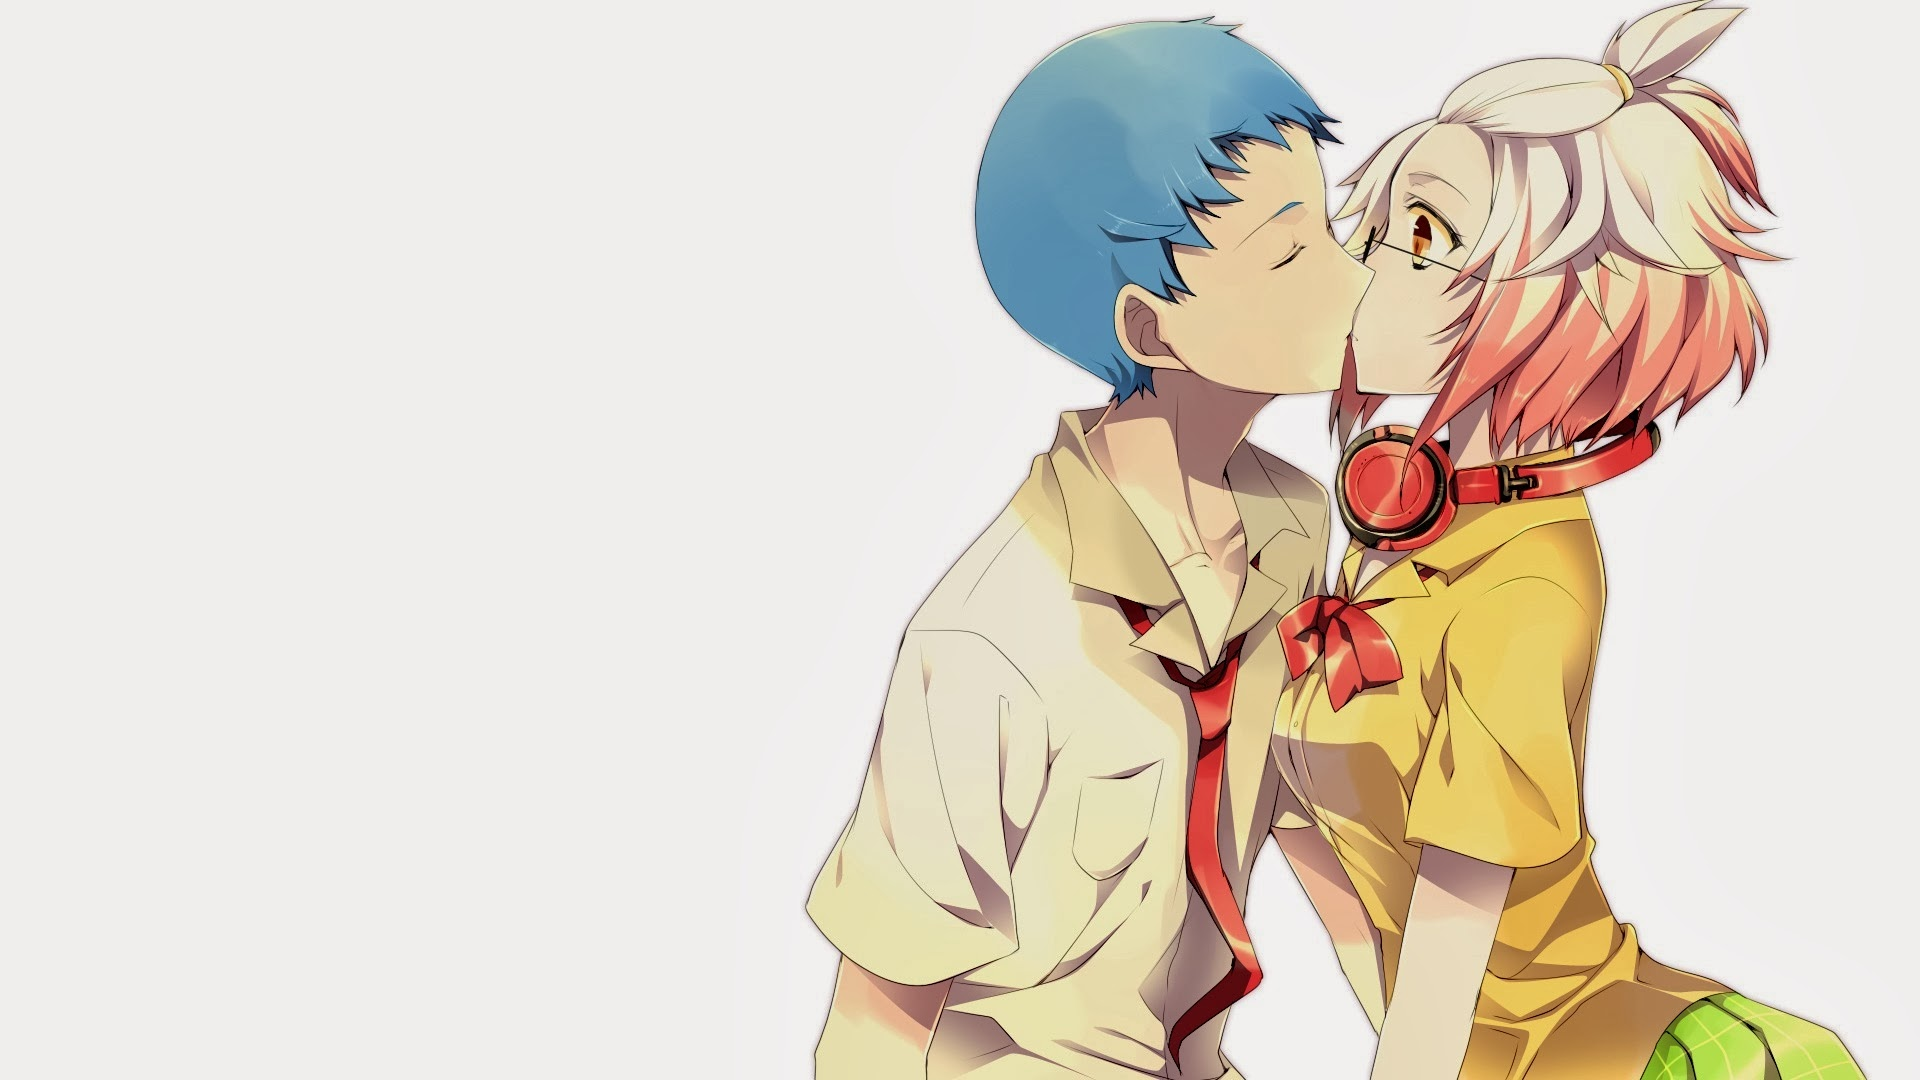 Animated Love Kiss Wallpaper : Anime couple HD Wallpaper - WallpaperSafari